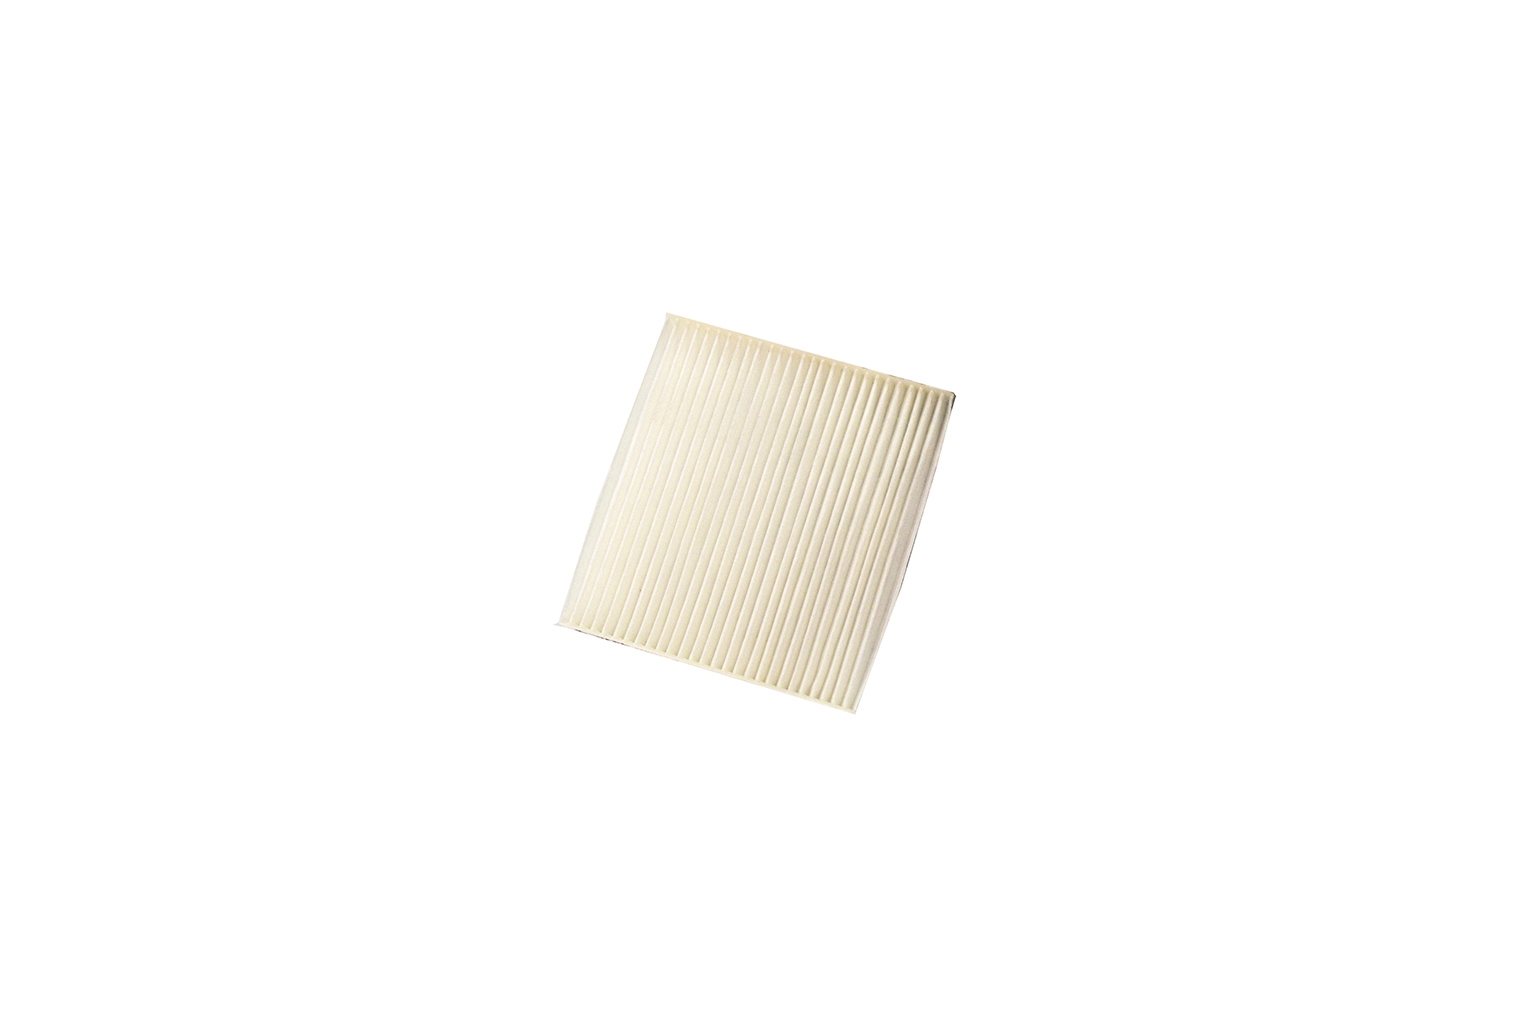 Replacement 150g/m2 Filter Mats Image